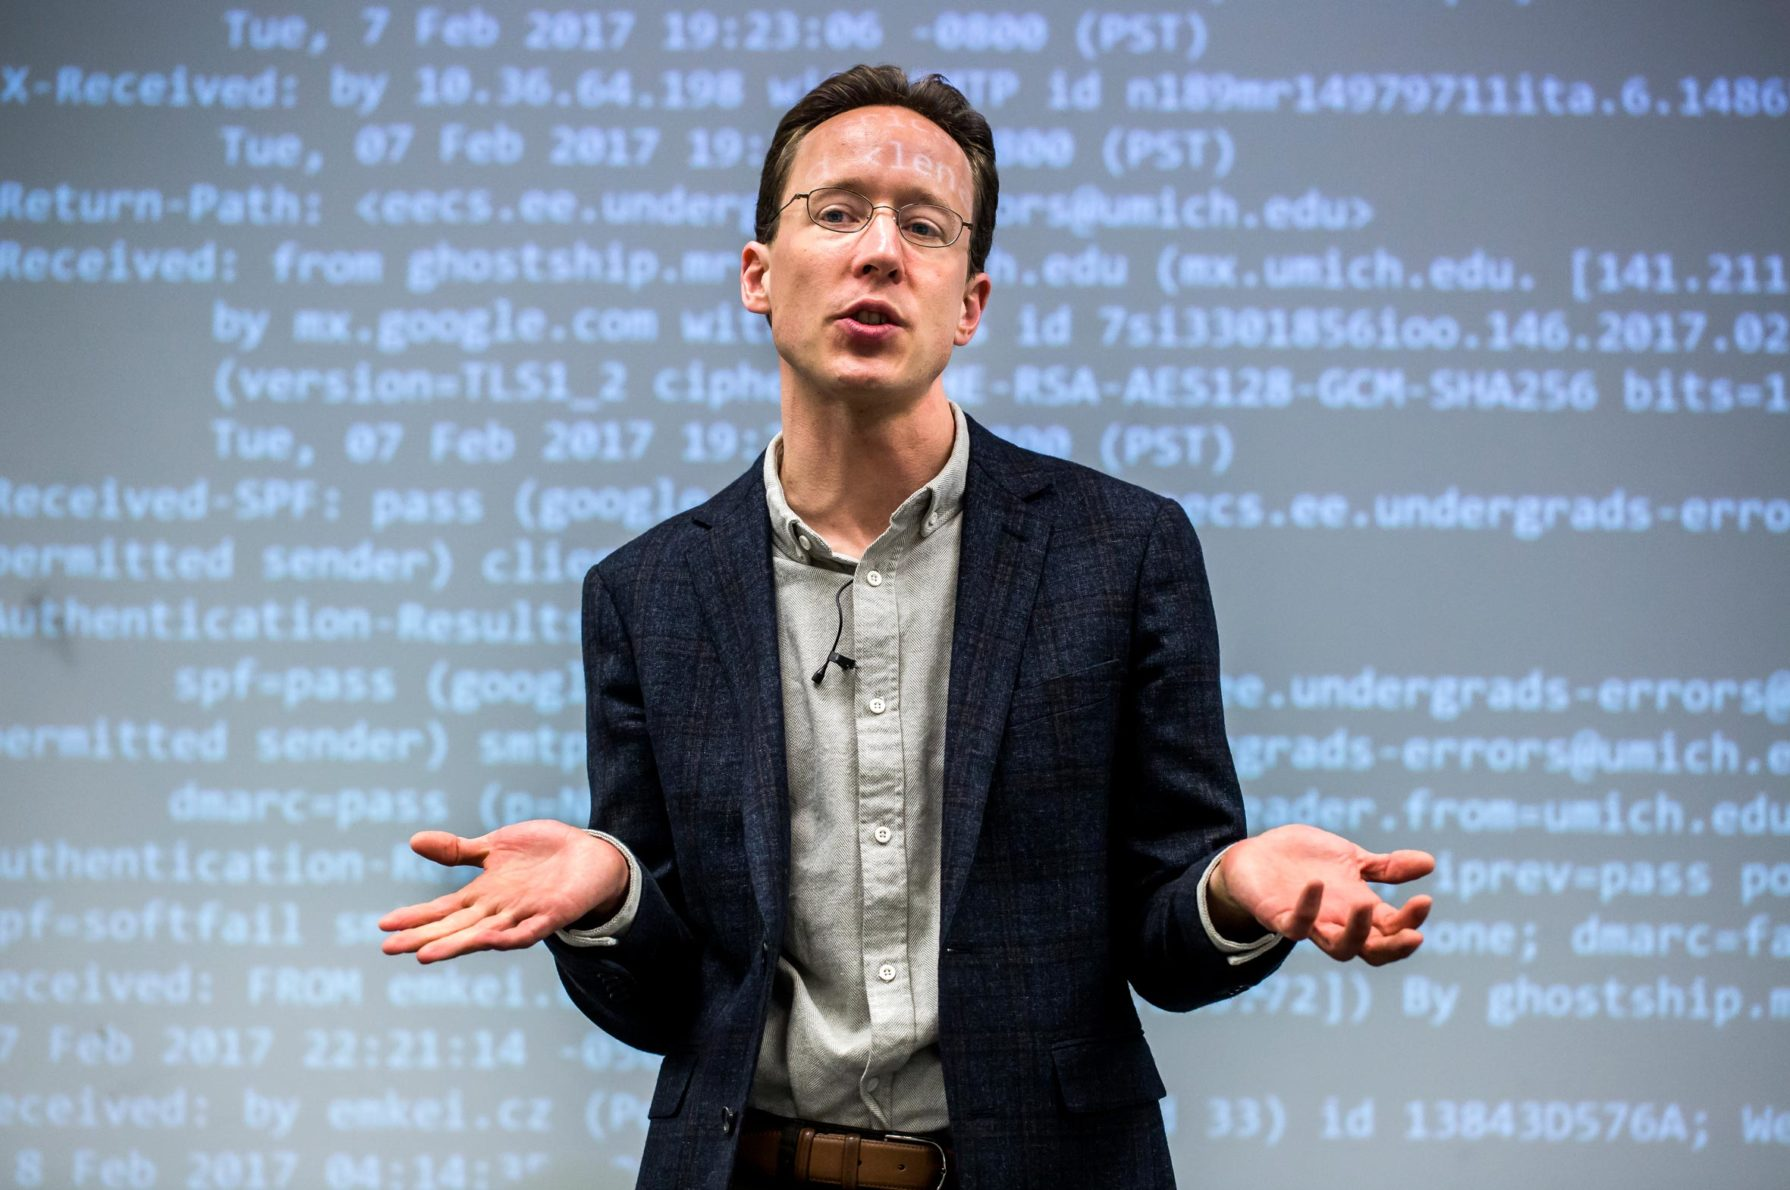 Portrait of J. Alex Halderman lecturing with projected text on the board behind him. Photo: Joseph Xu, Michigan Engineering.